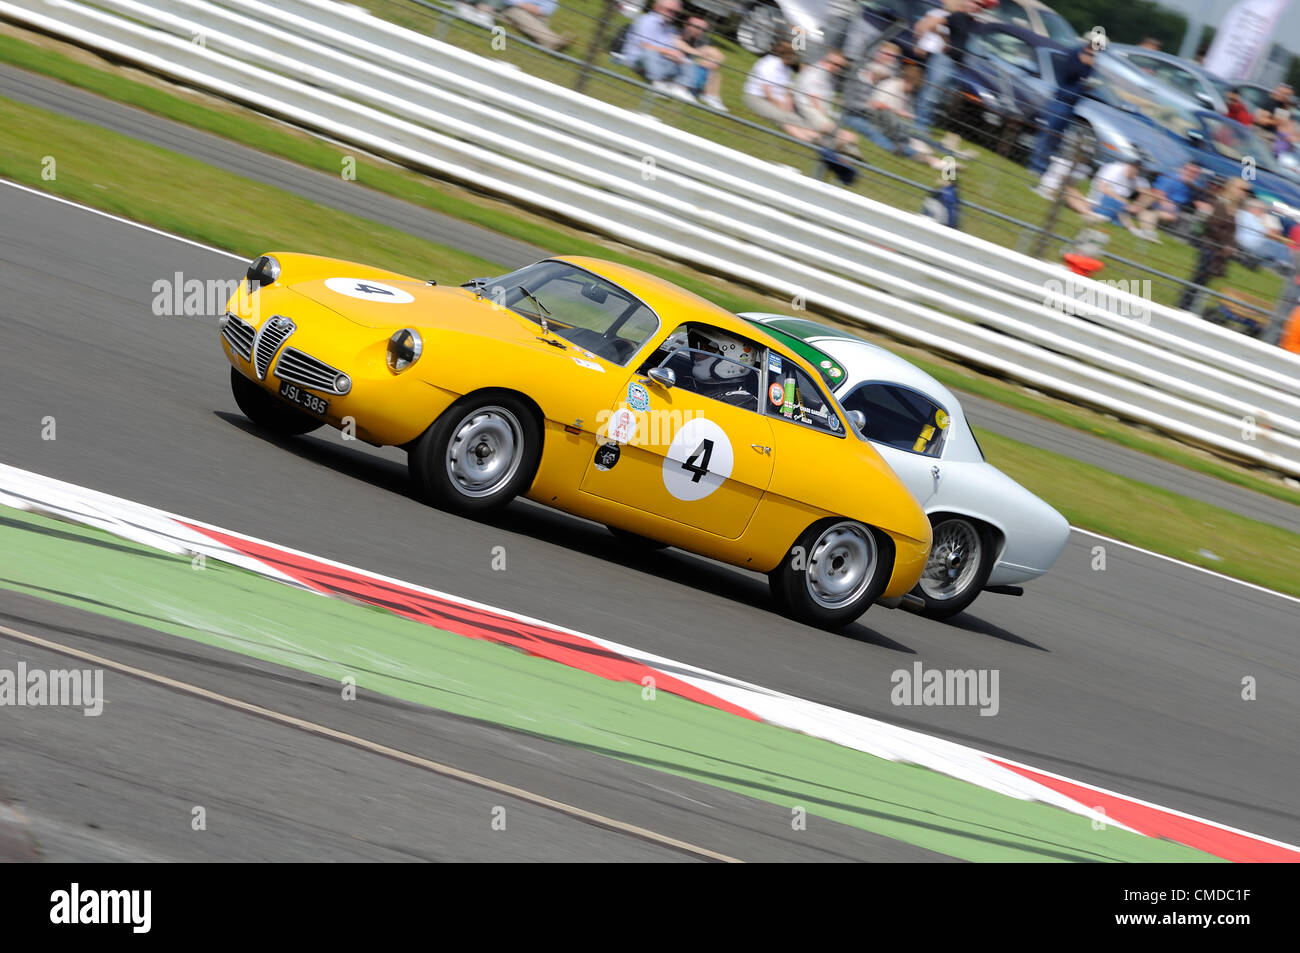 22nd July 2012, Silverstone, UK.  Paul Chase-Gardener's Alfa Romeo Giulietta overtakes during the Royal Automobile - Stock Image